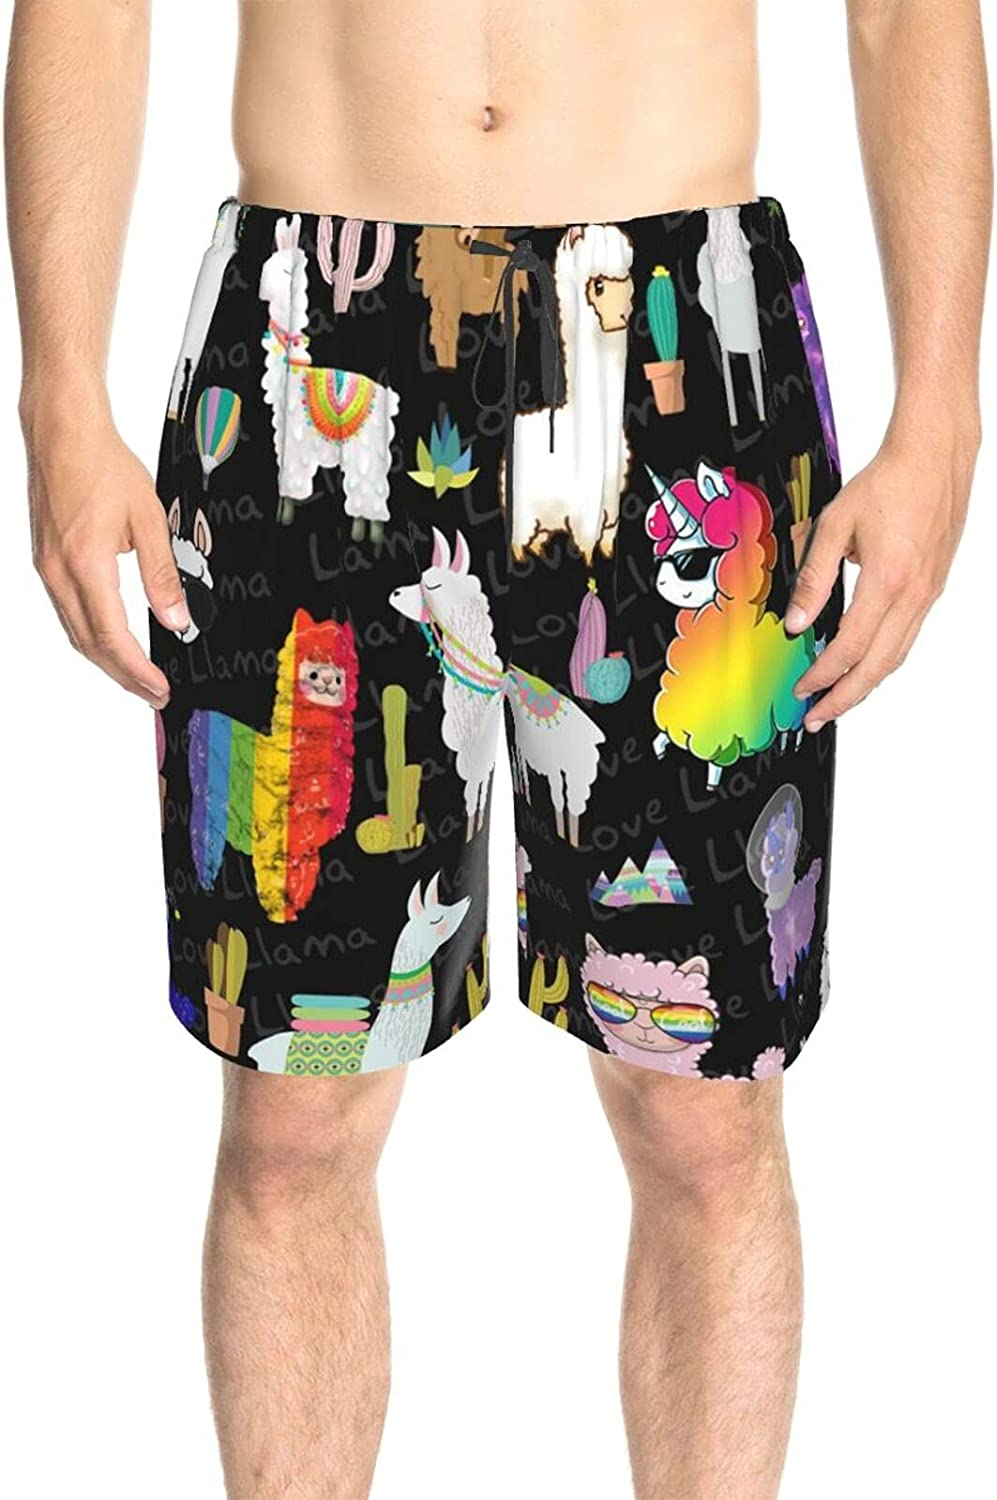 Men's Swim Shorts Llama Love Bathing Suit Boardshorts Quick Dry Comfy Swimming Trunks with Liner